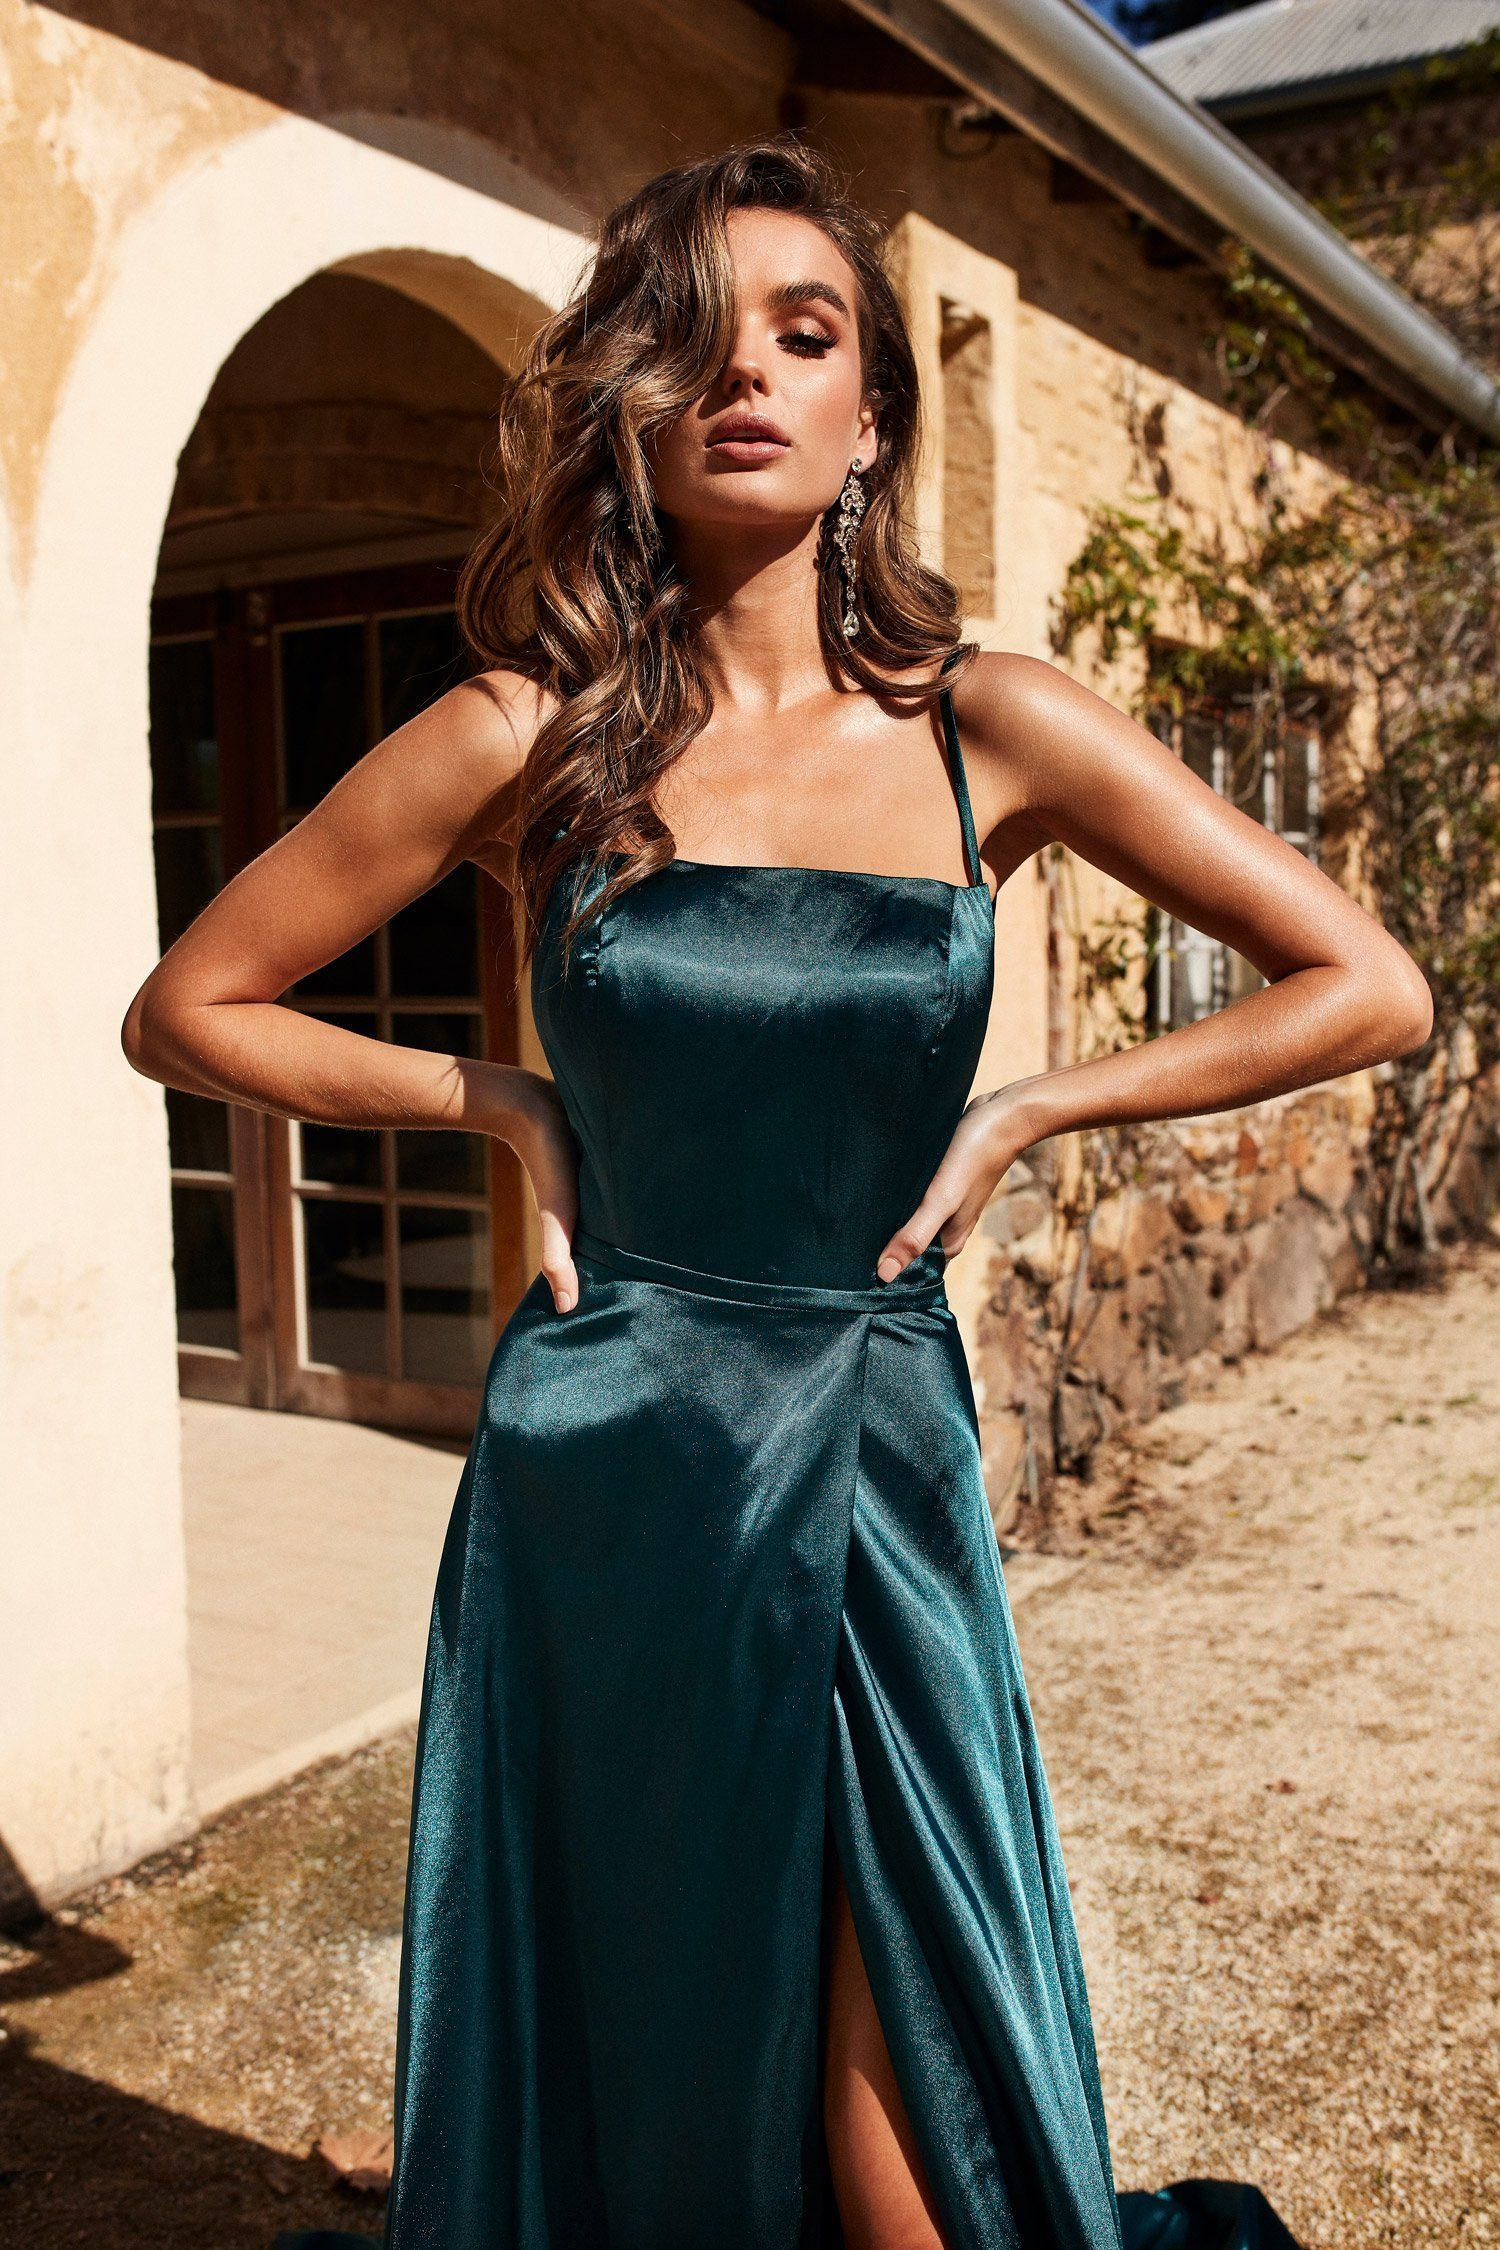 ae8aa3e8a6695 A&N Luxe Bianca Satin Gown - Teal in 2019   Dresses   Dresses, Prom ...